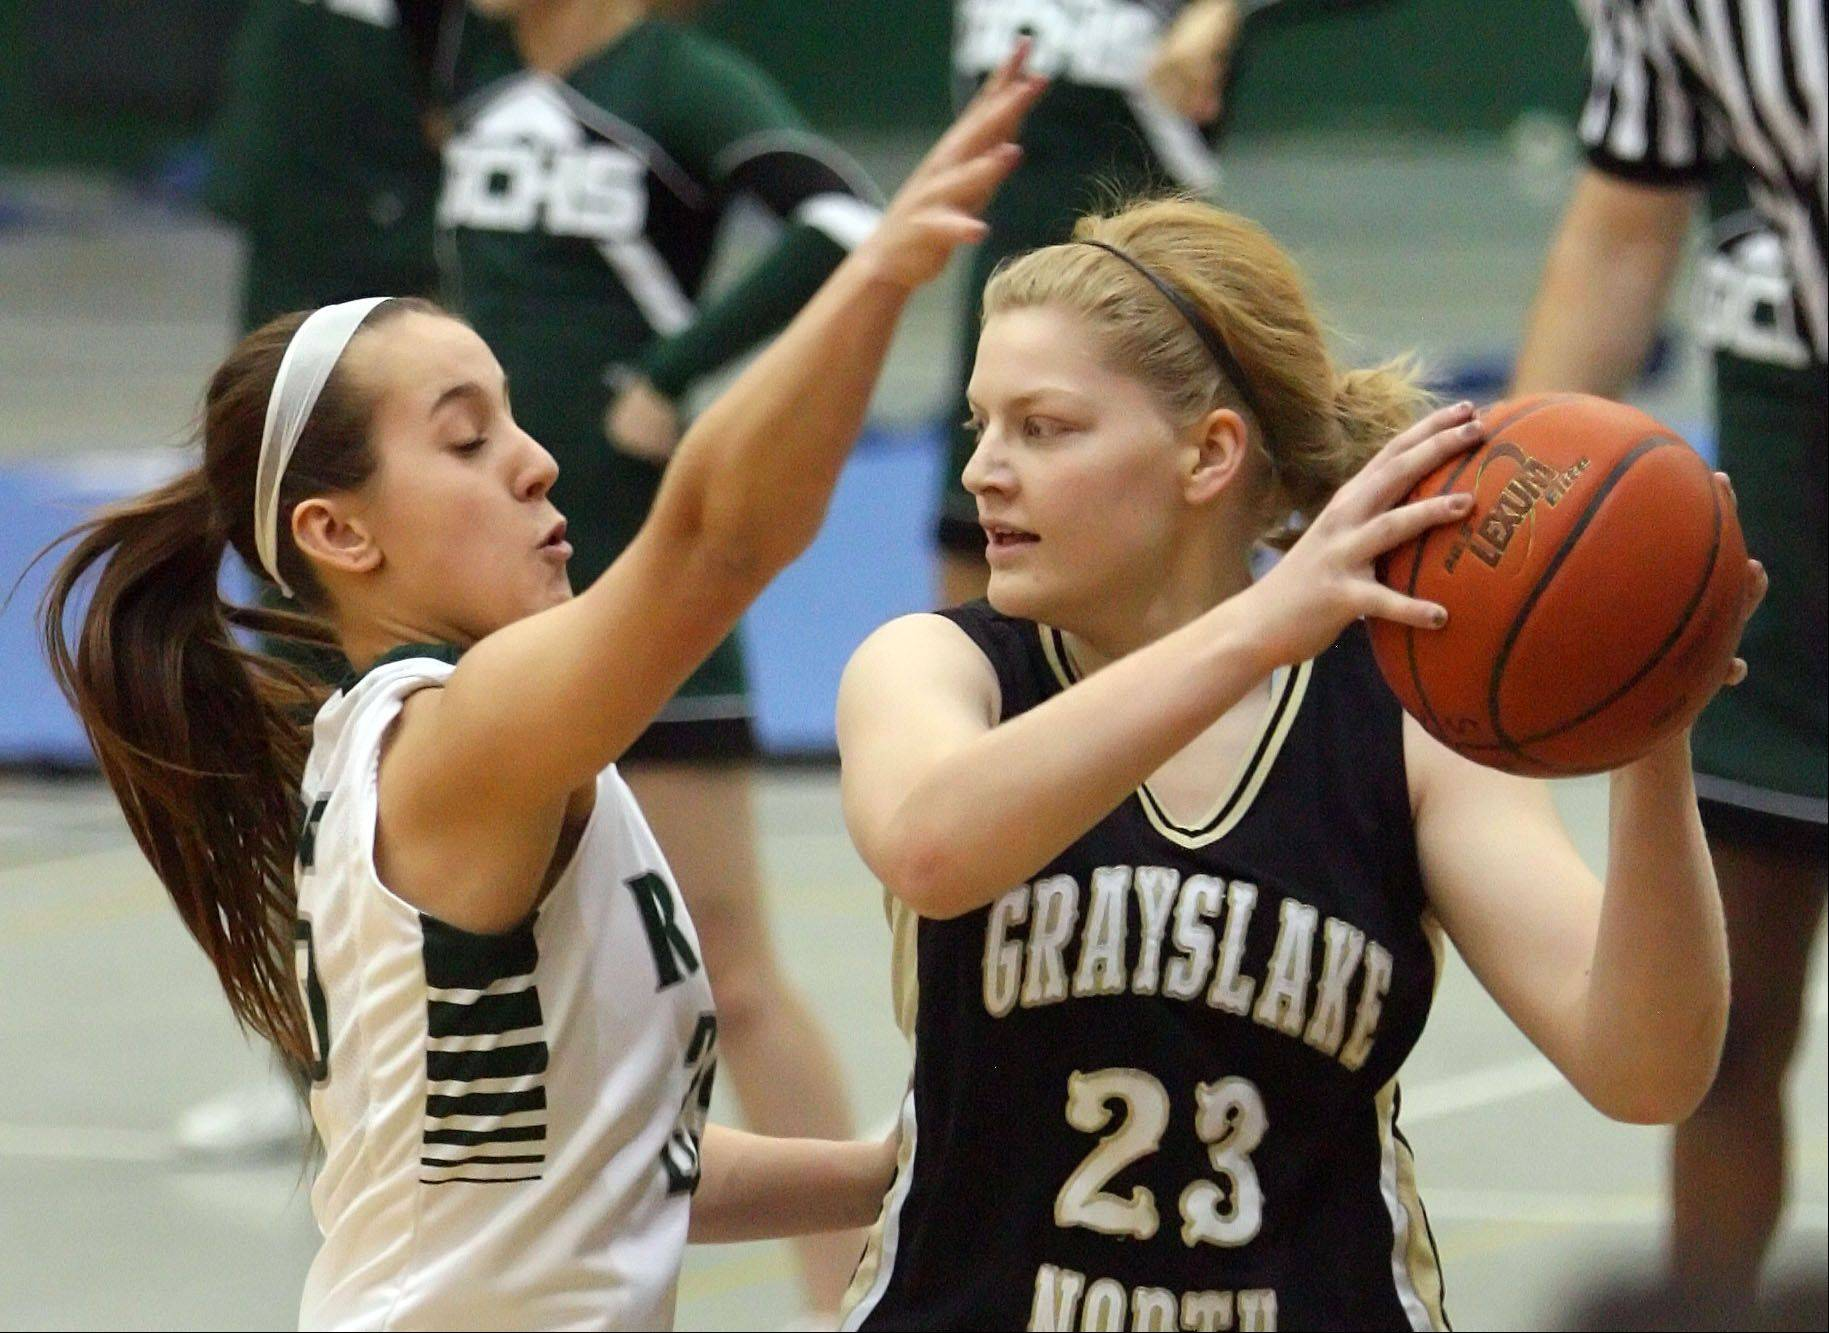 Images: Grayslake North vs. Grayslake Central, girls basketball